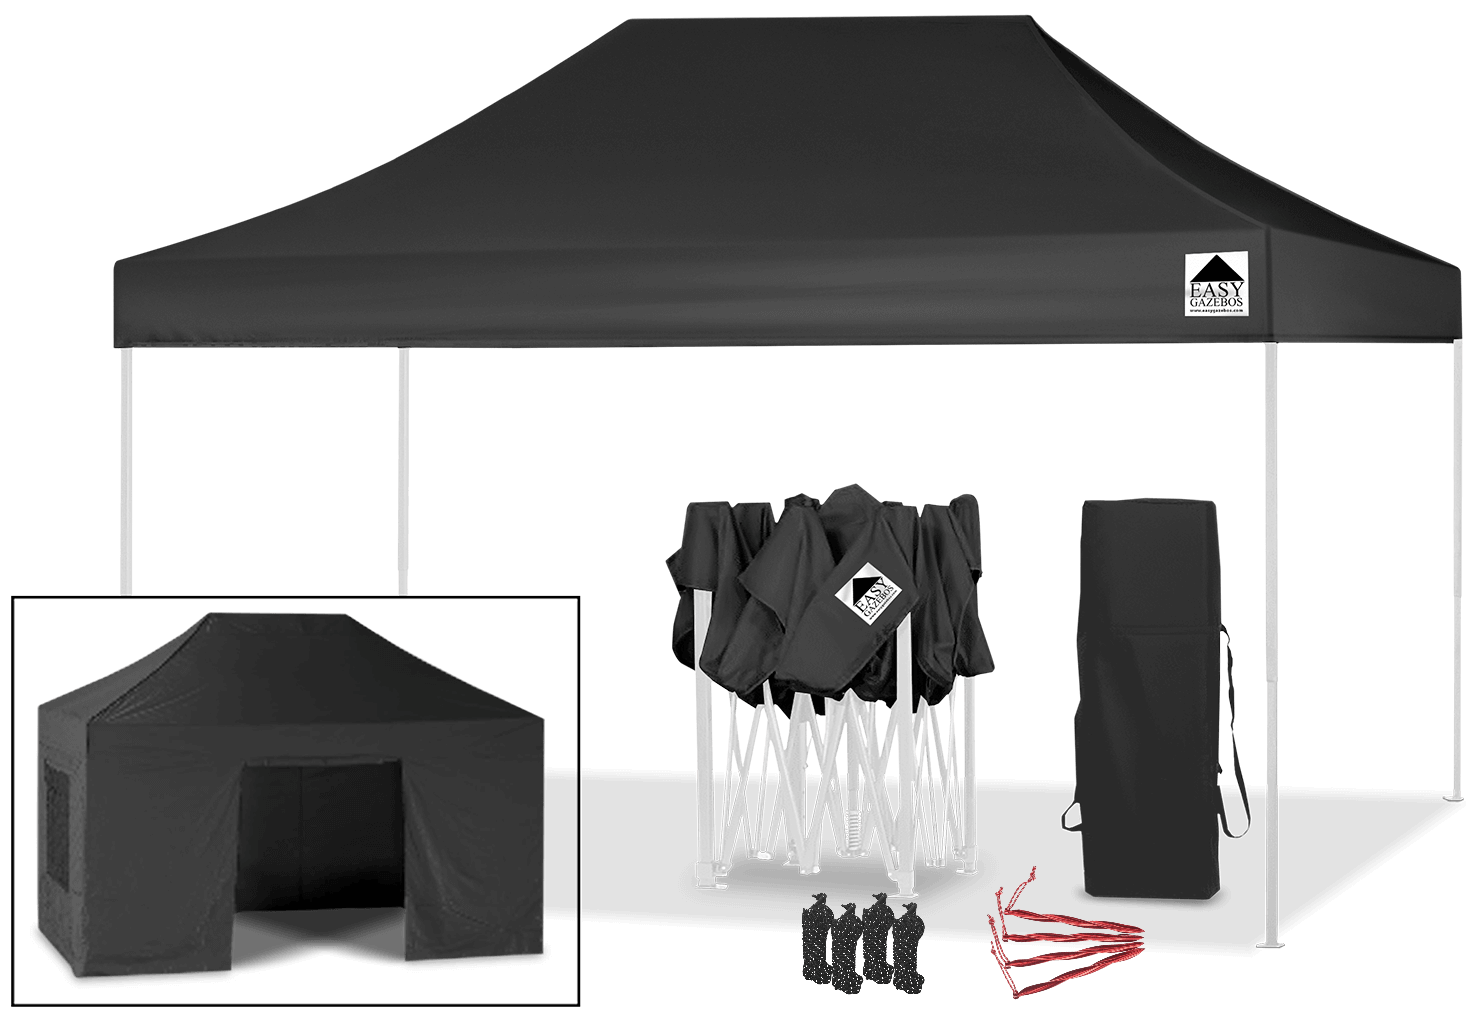 10x15' Gazebo Heavy Duty Market Stall - Event Tent (3x4.5m) Black with white frame | EasyGazebos.com